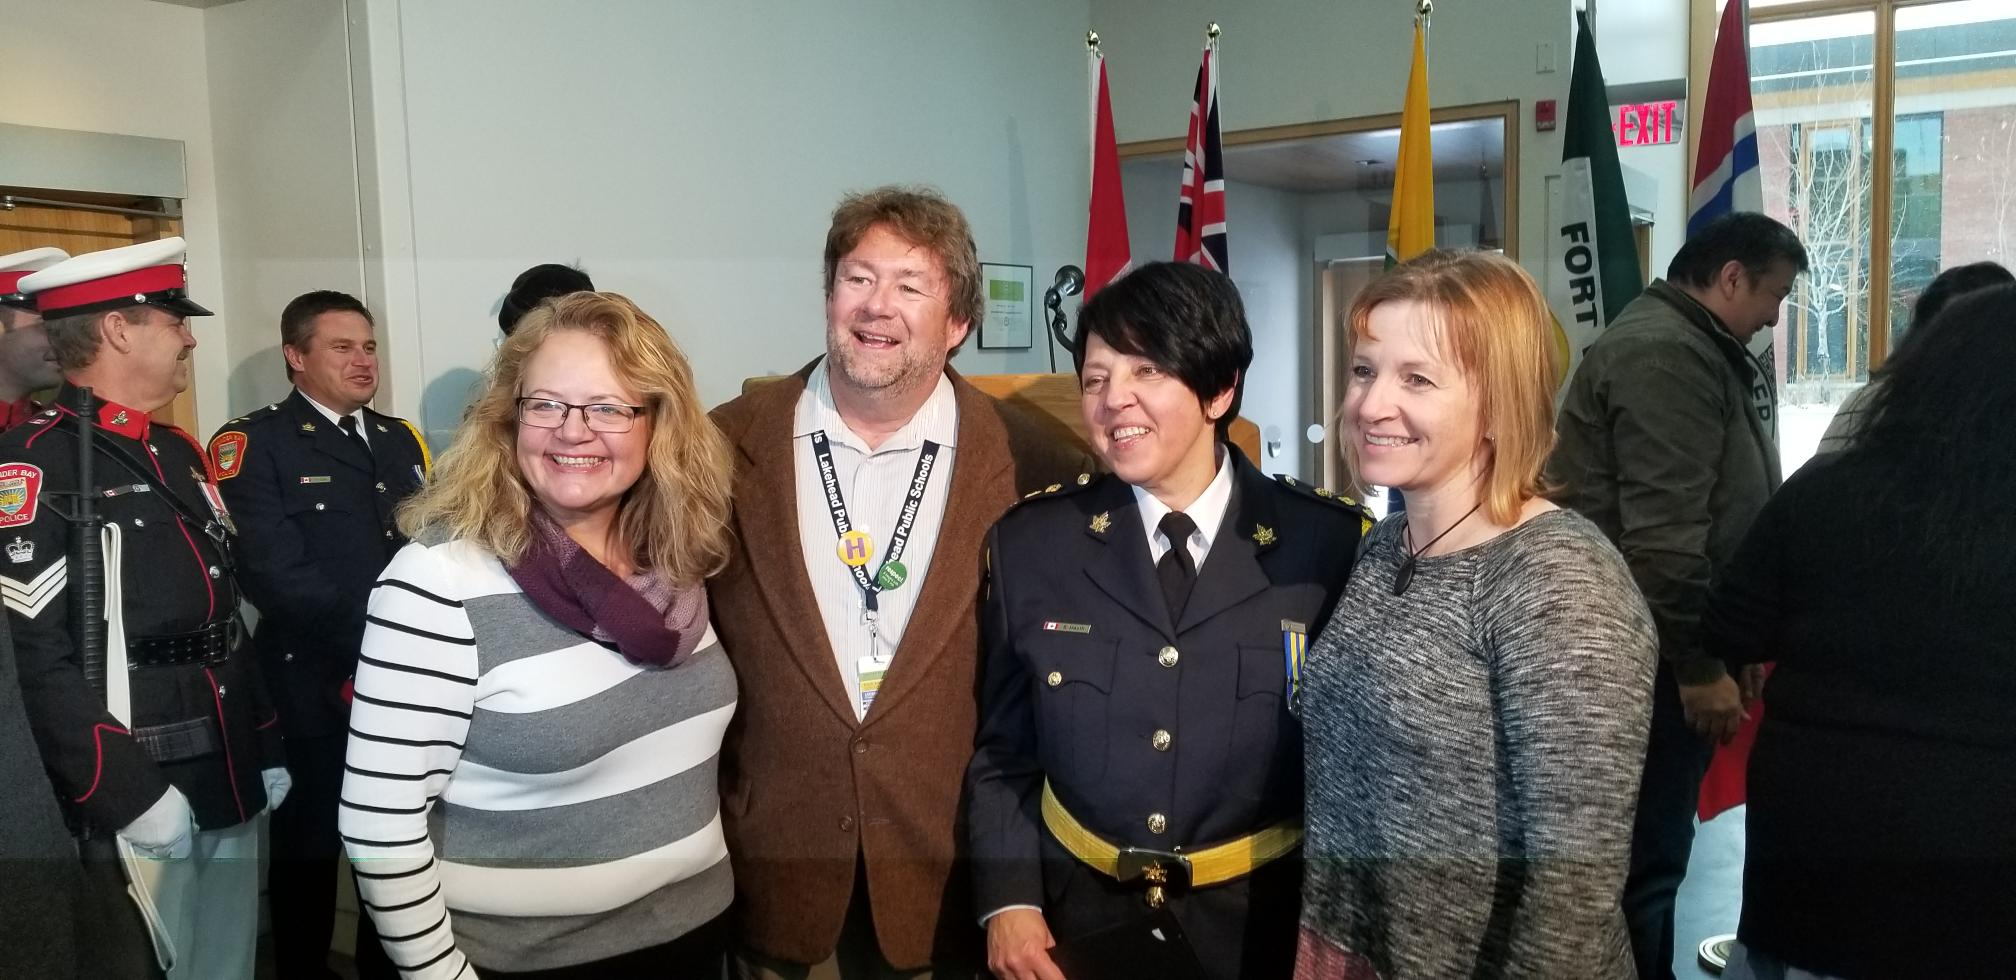 VIDEO: Sylvie Hauth Sworn In As Police Chief